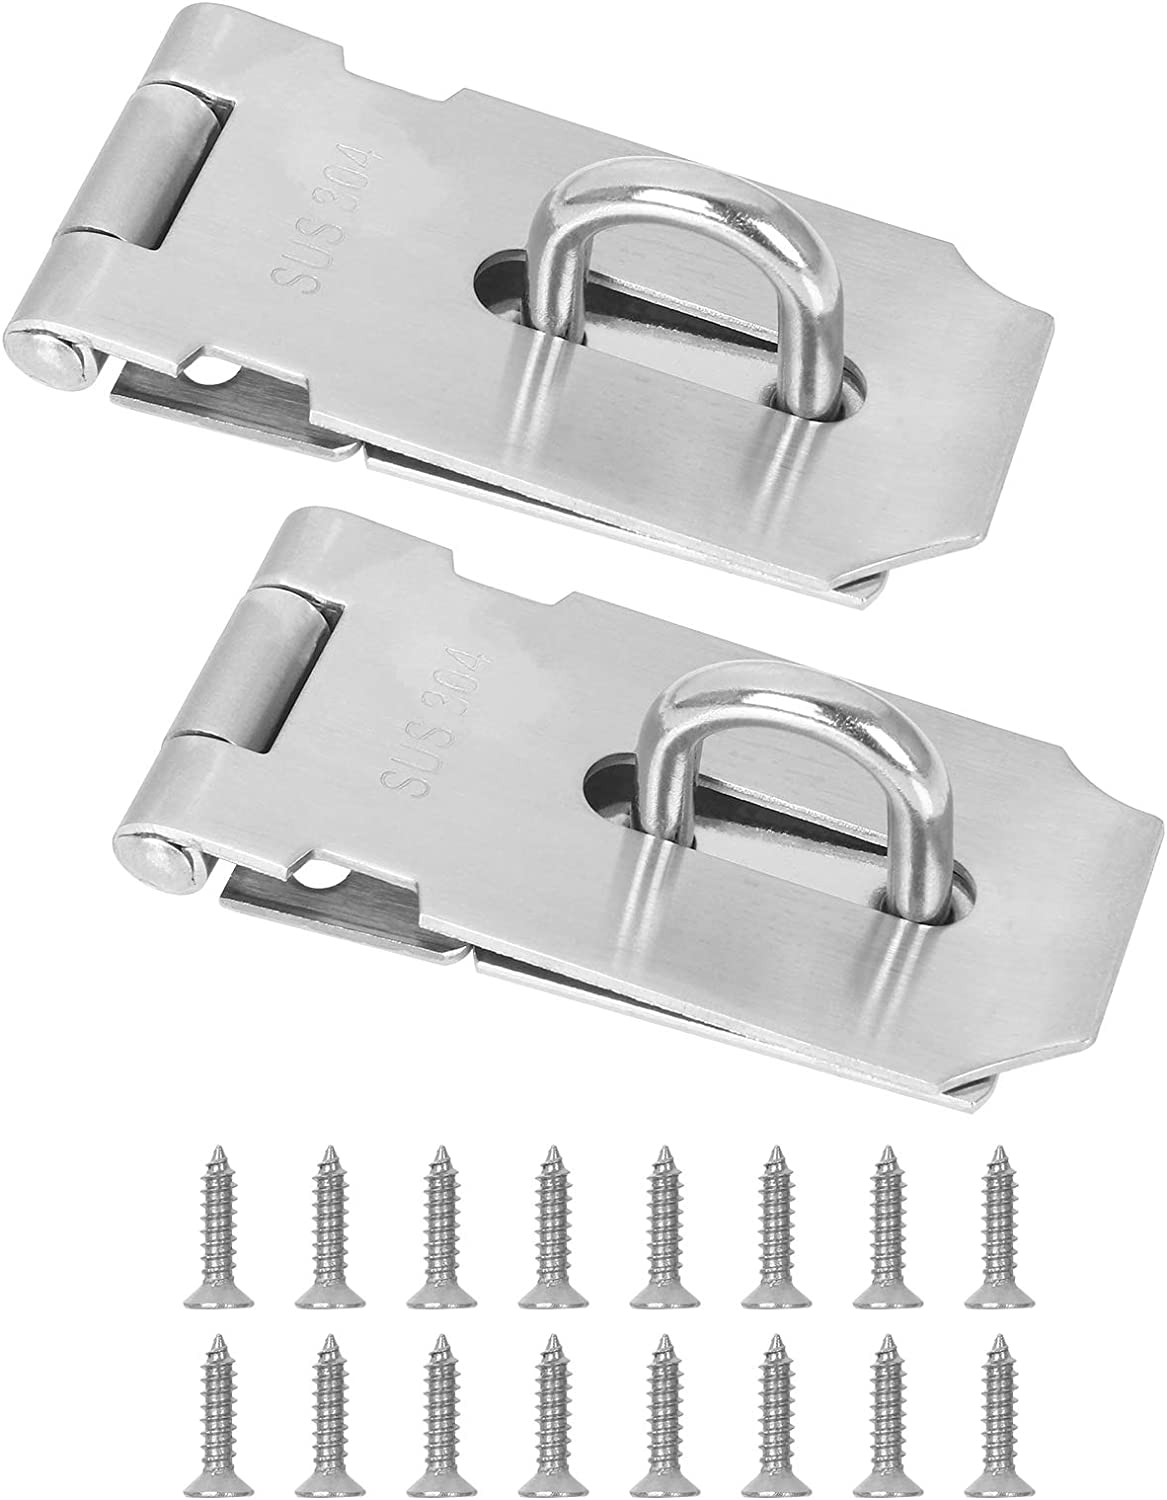 ZOEYES 2 Pack 3 Inch 2021 Padlock 304 New product Door Stainless Hasp Steel Clasp